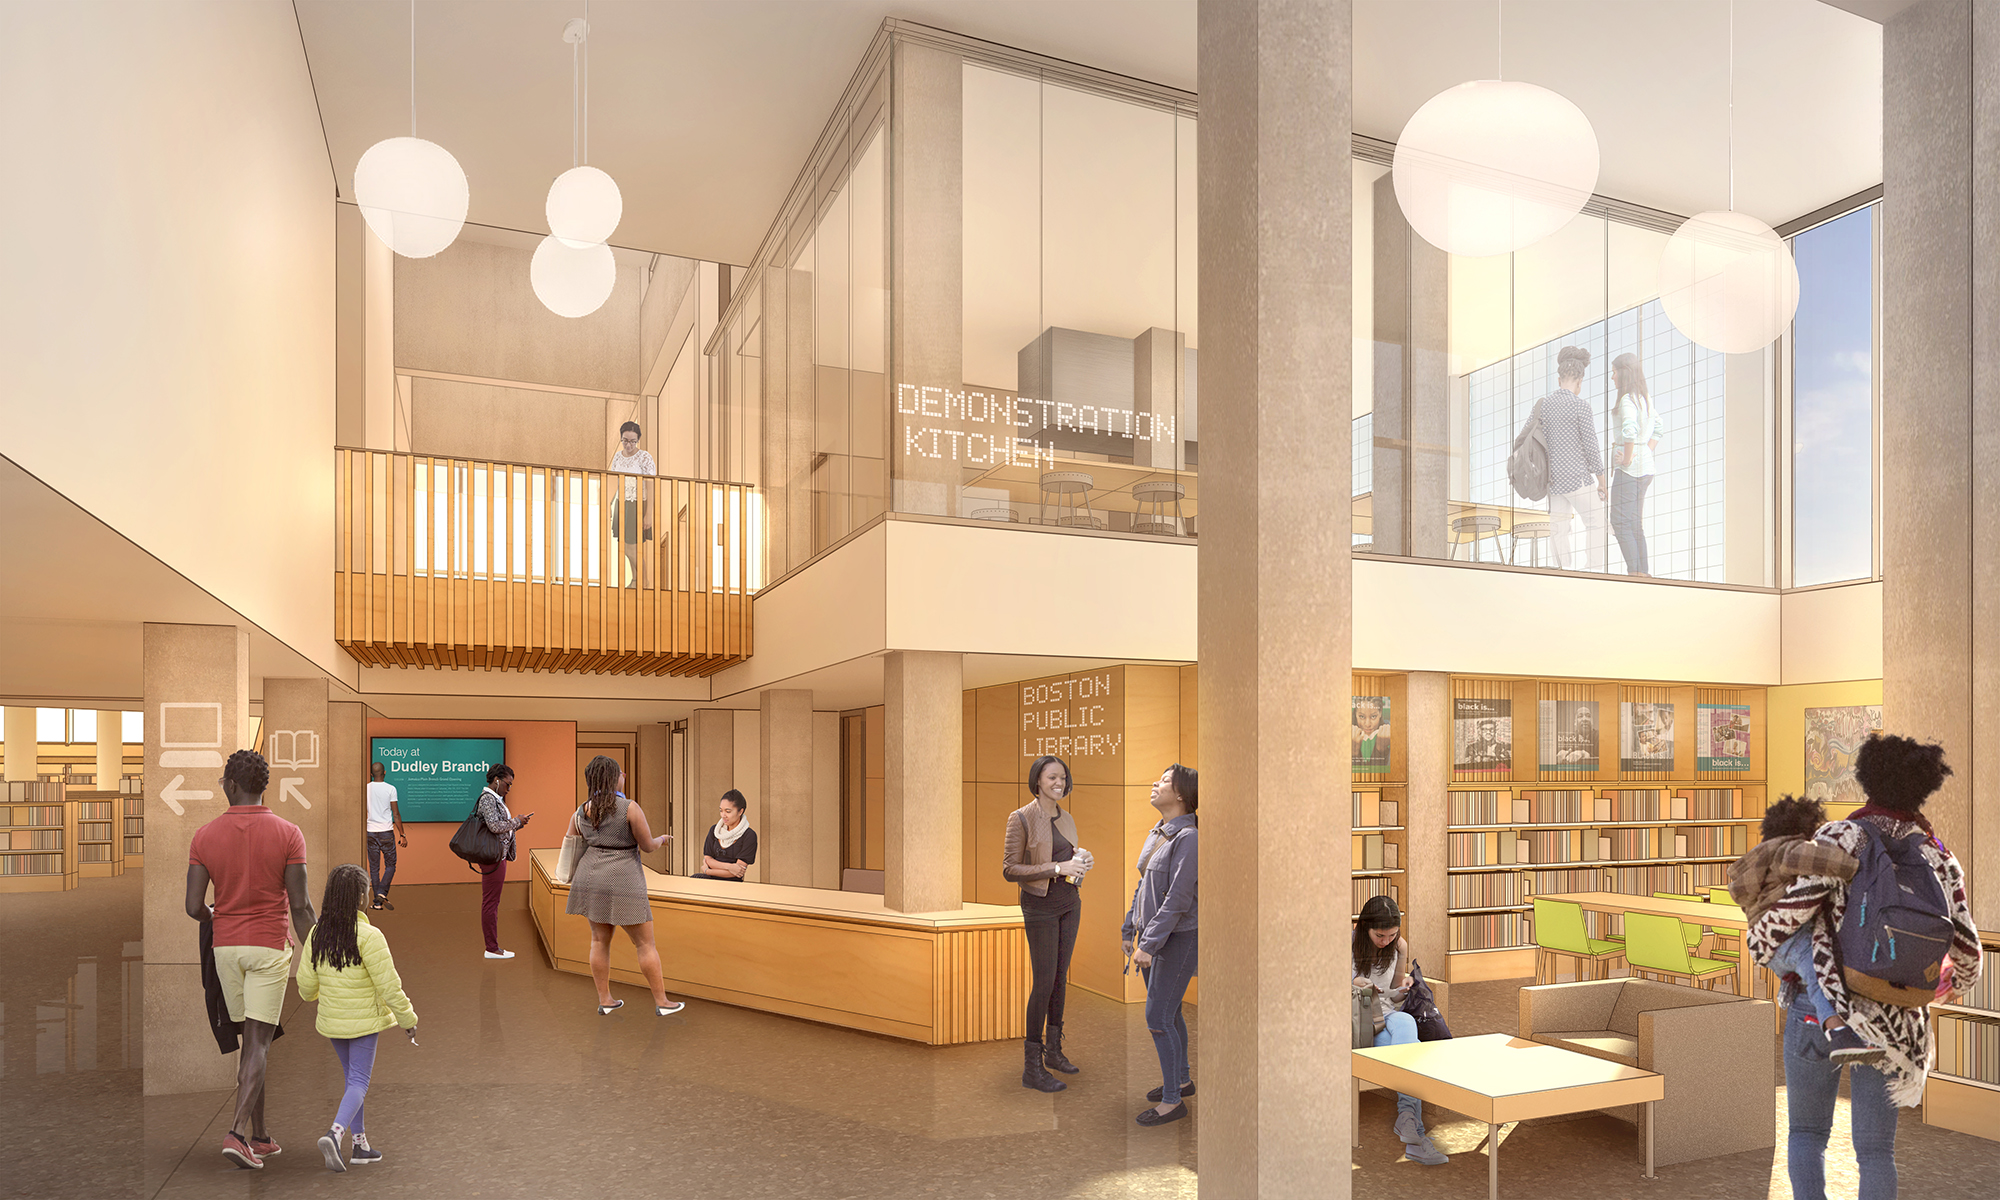 dudley library branch redo is the best boston area new development